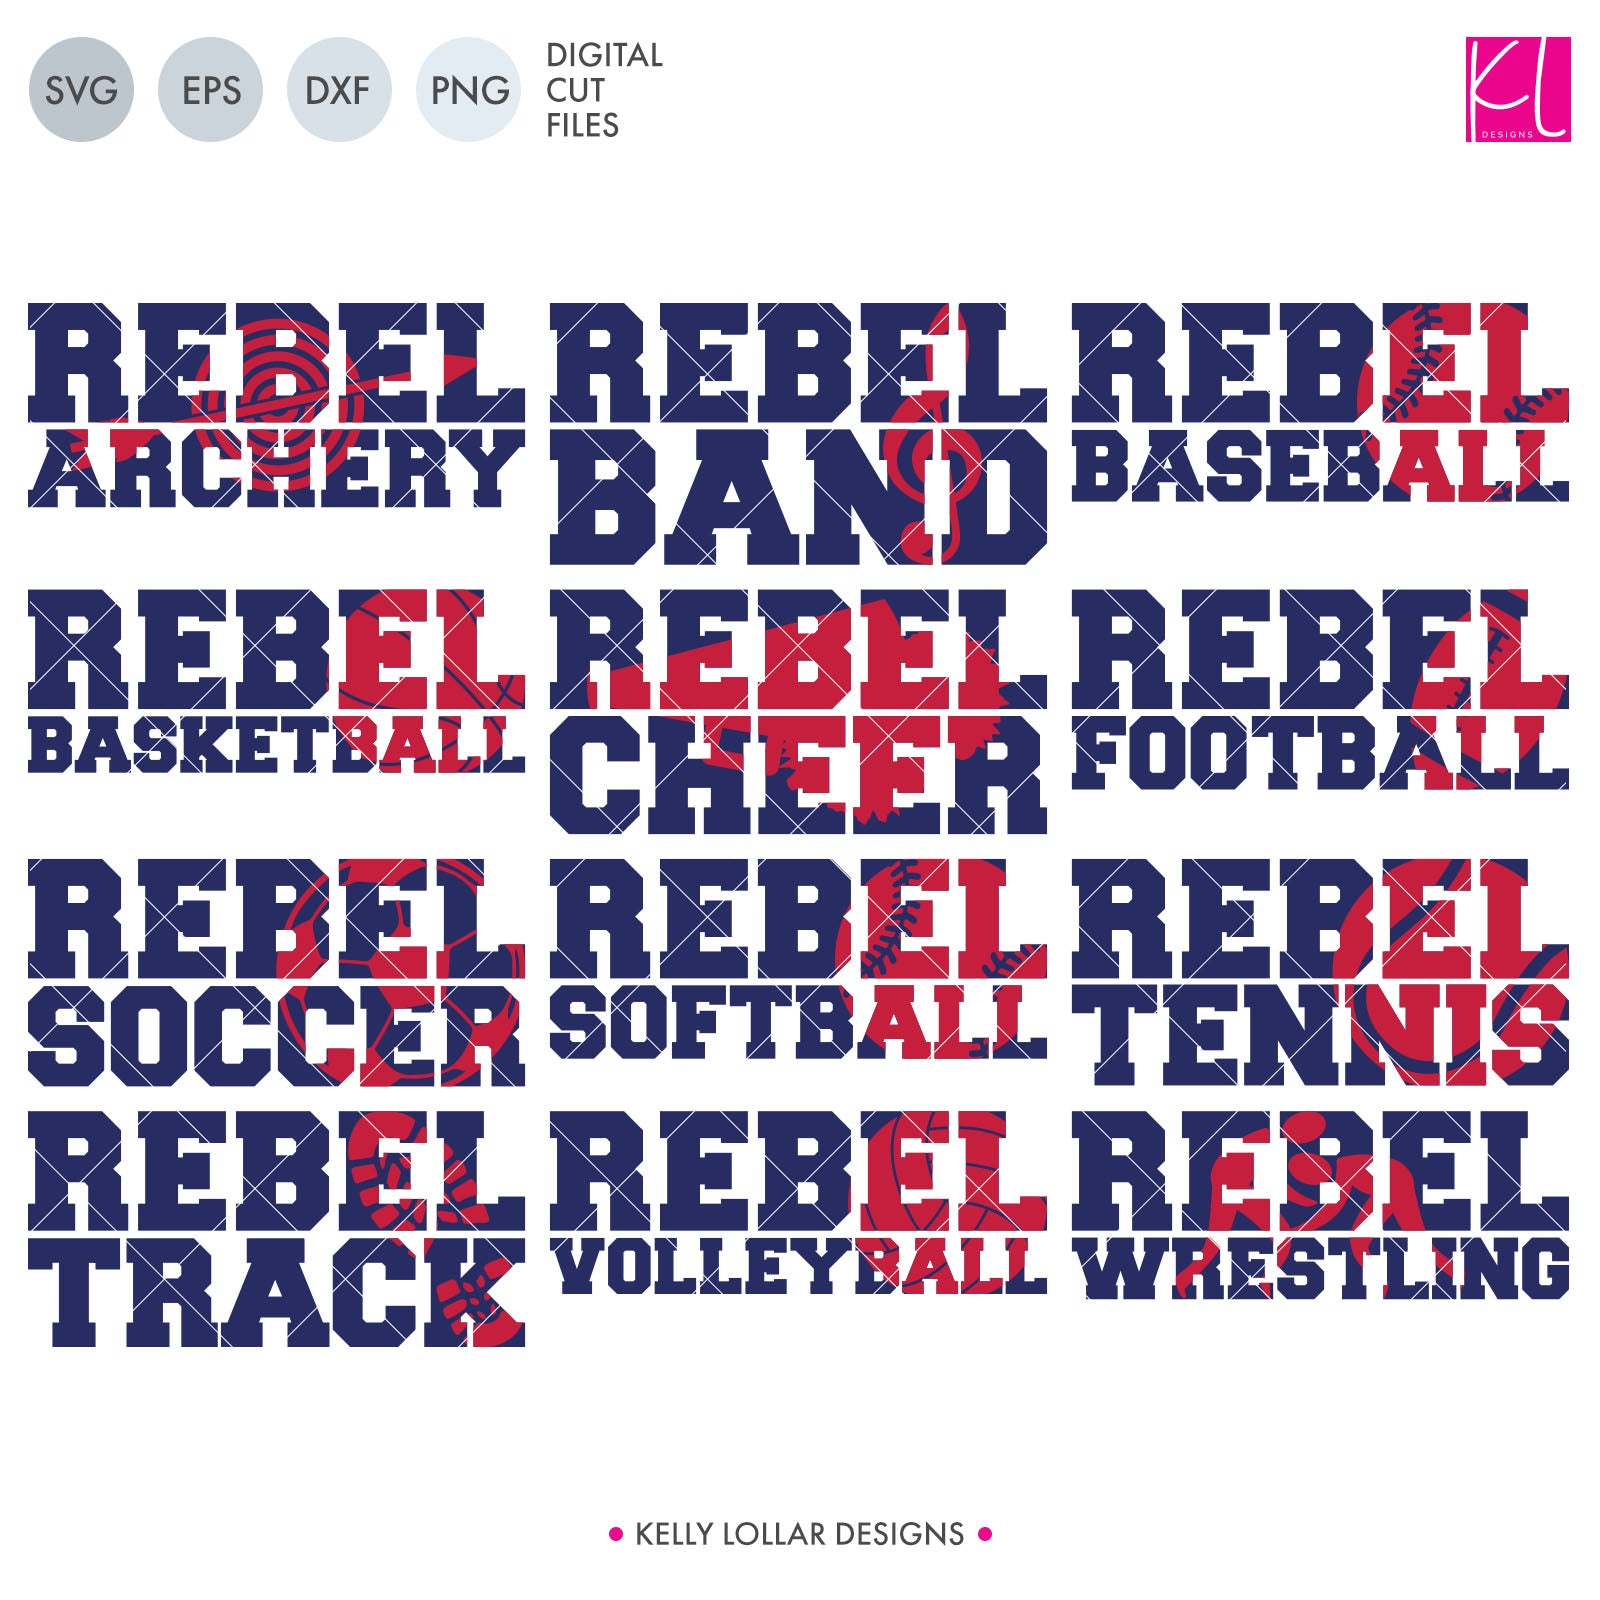 Rebels Sports Pack Svg Dxf Eps Png Cut Files Kelly Lollar Designs